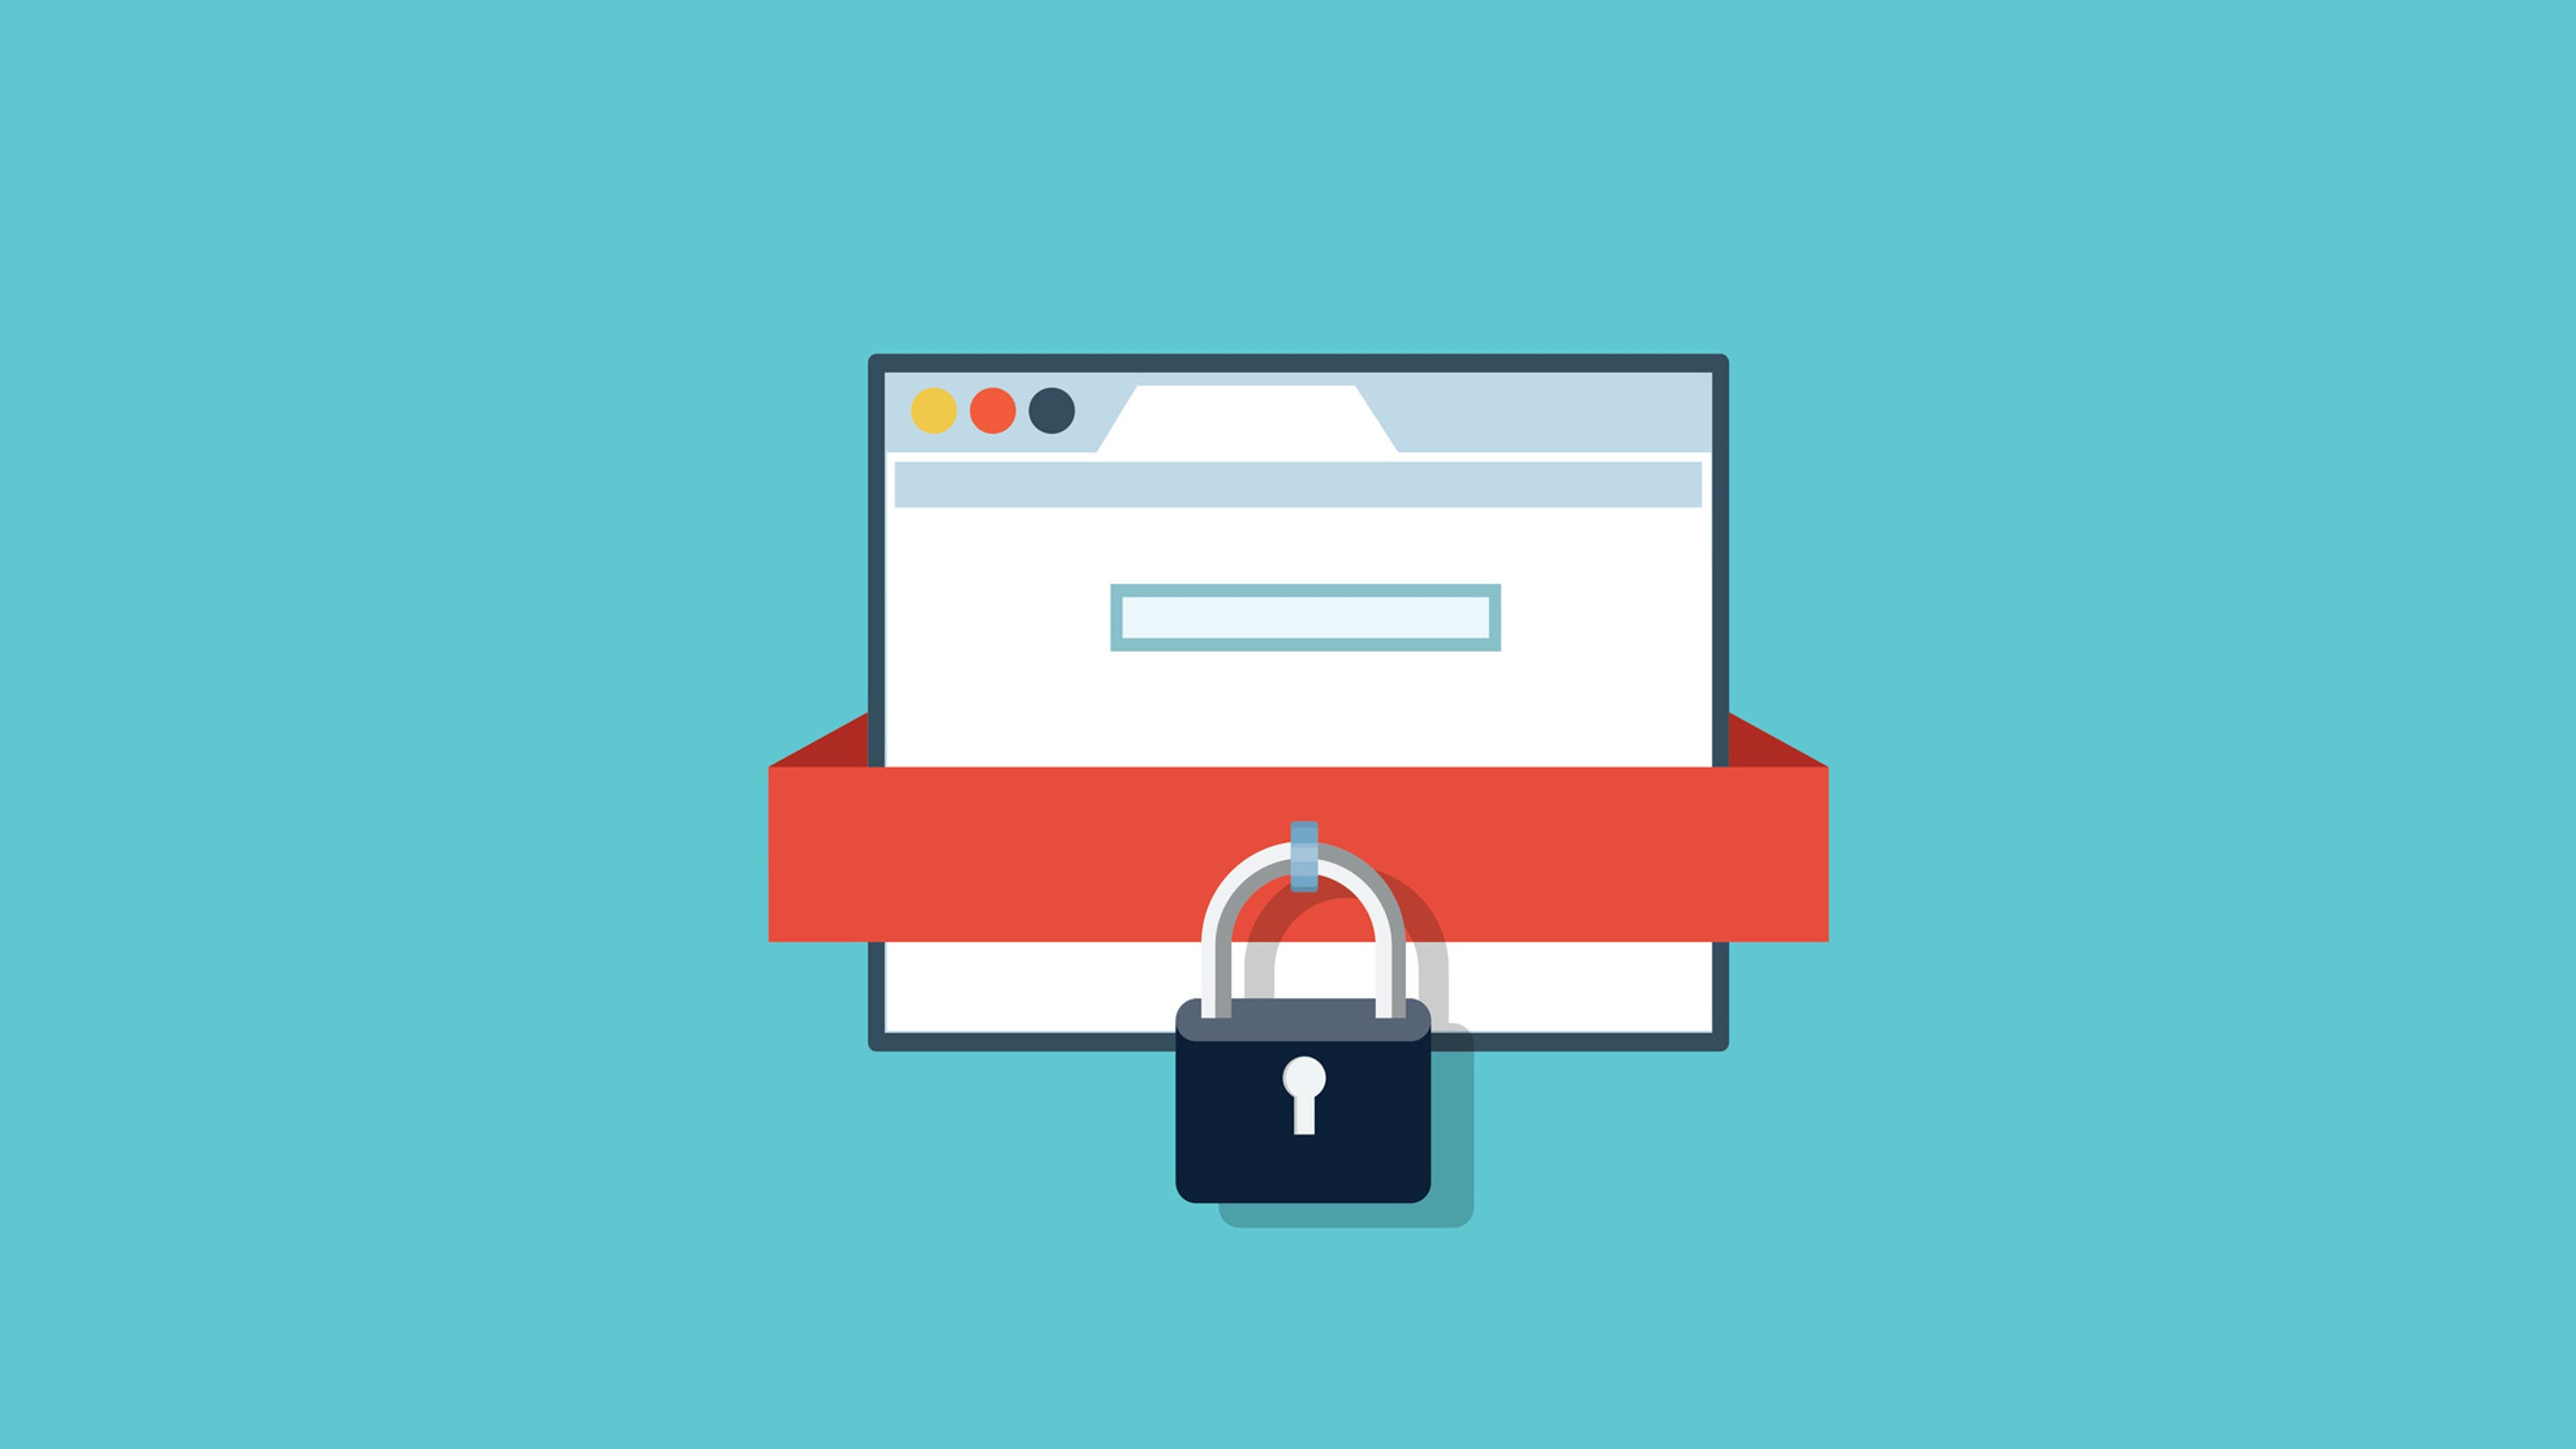 equifax security breach 3 best ways to protect yourself